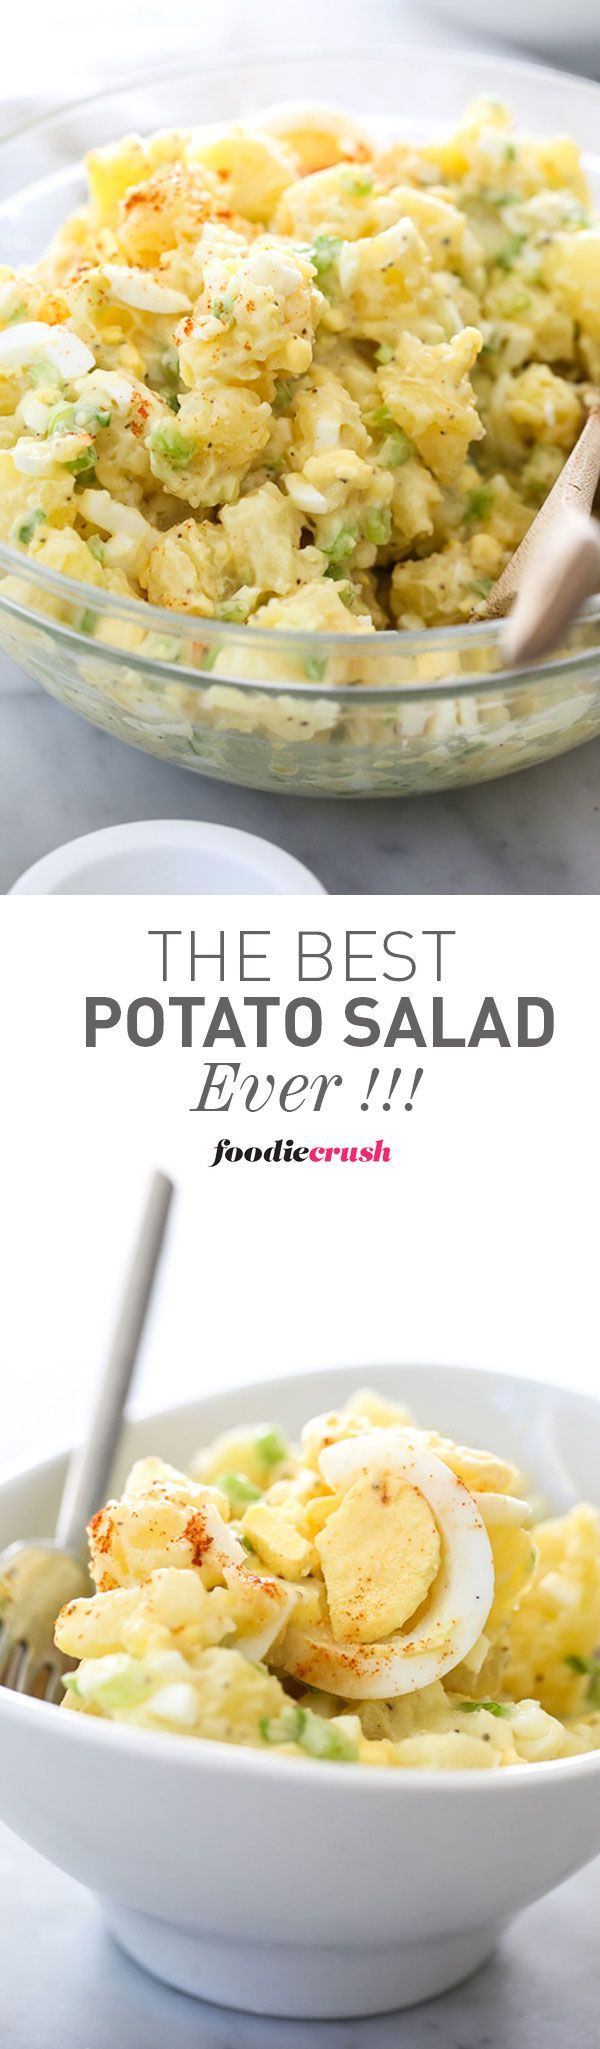 You cannot have a Super Bowl party without Potato Salad and this recipe will get your hungry football fans coming back for more.  For recipe go to www.foodiecrush.com